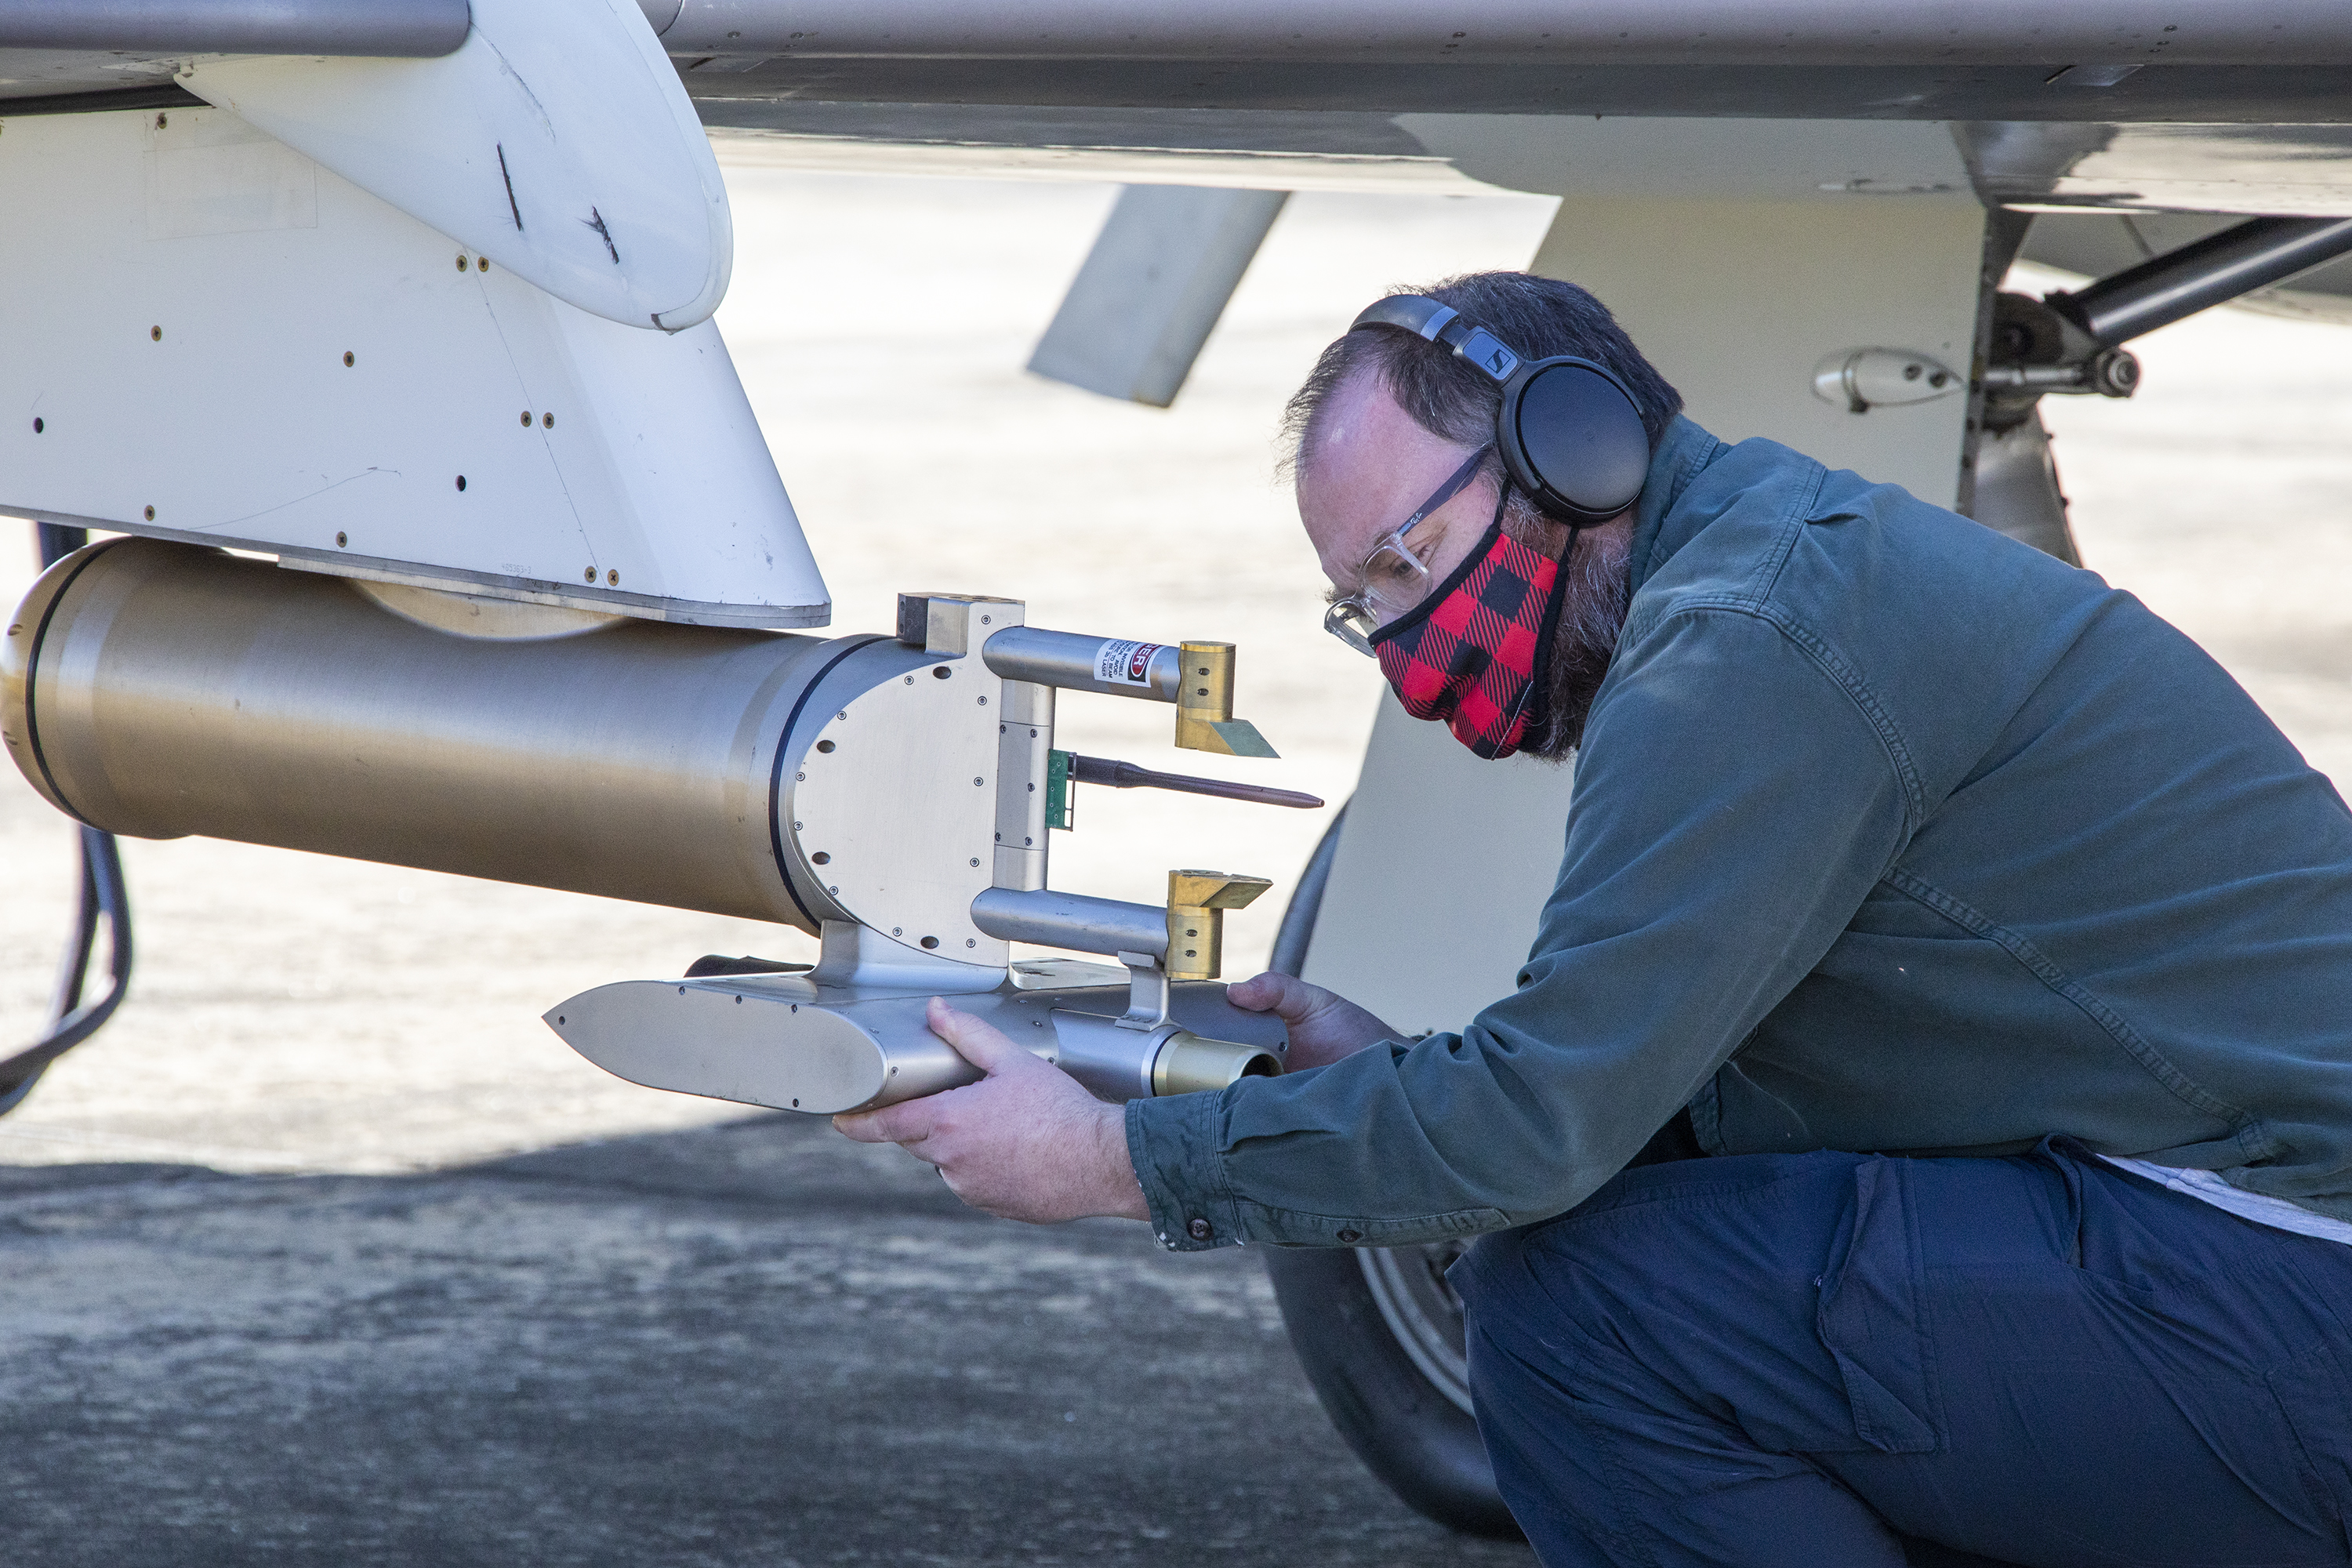 Researcher Luke Ziemba checks an instrument on the Falcon prior to a flight.